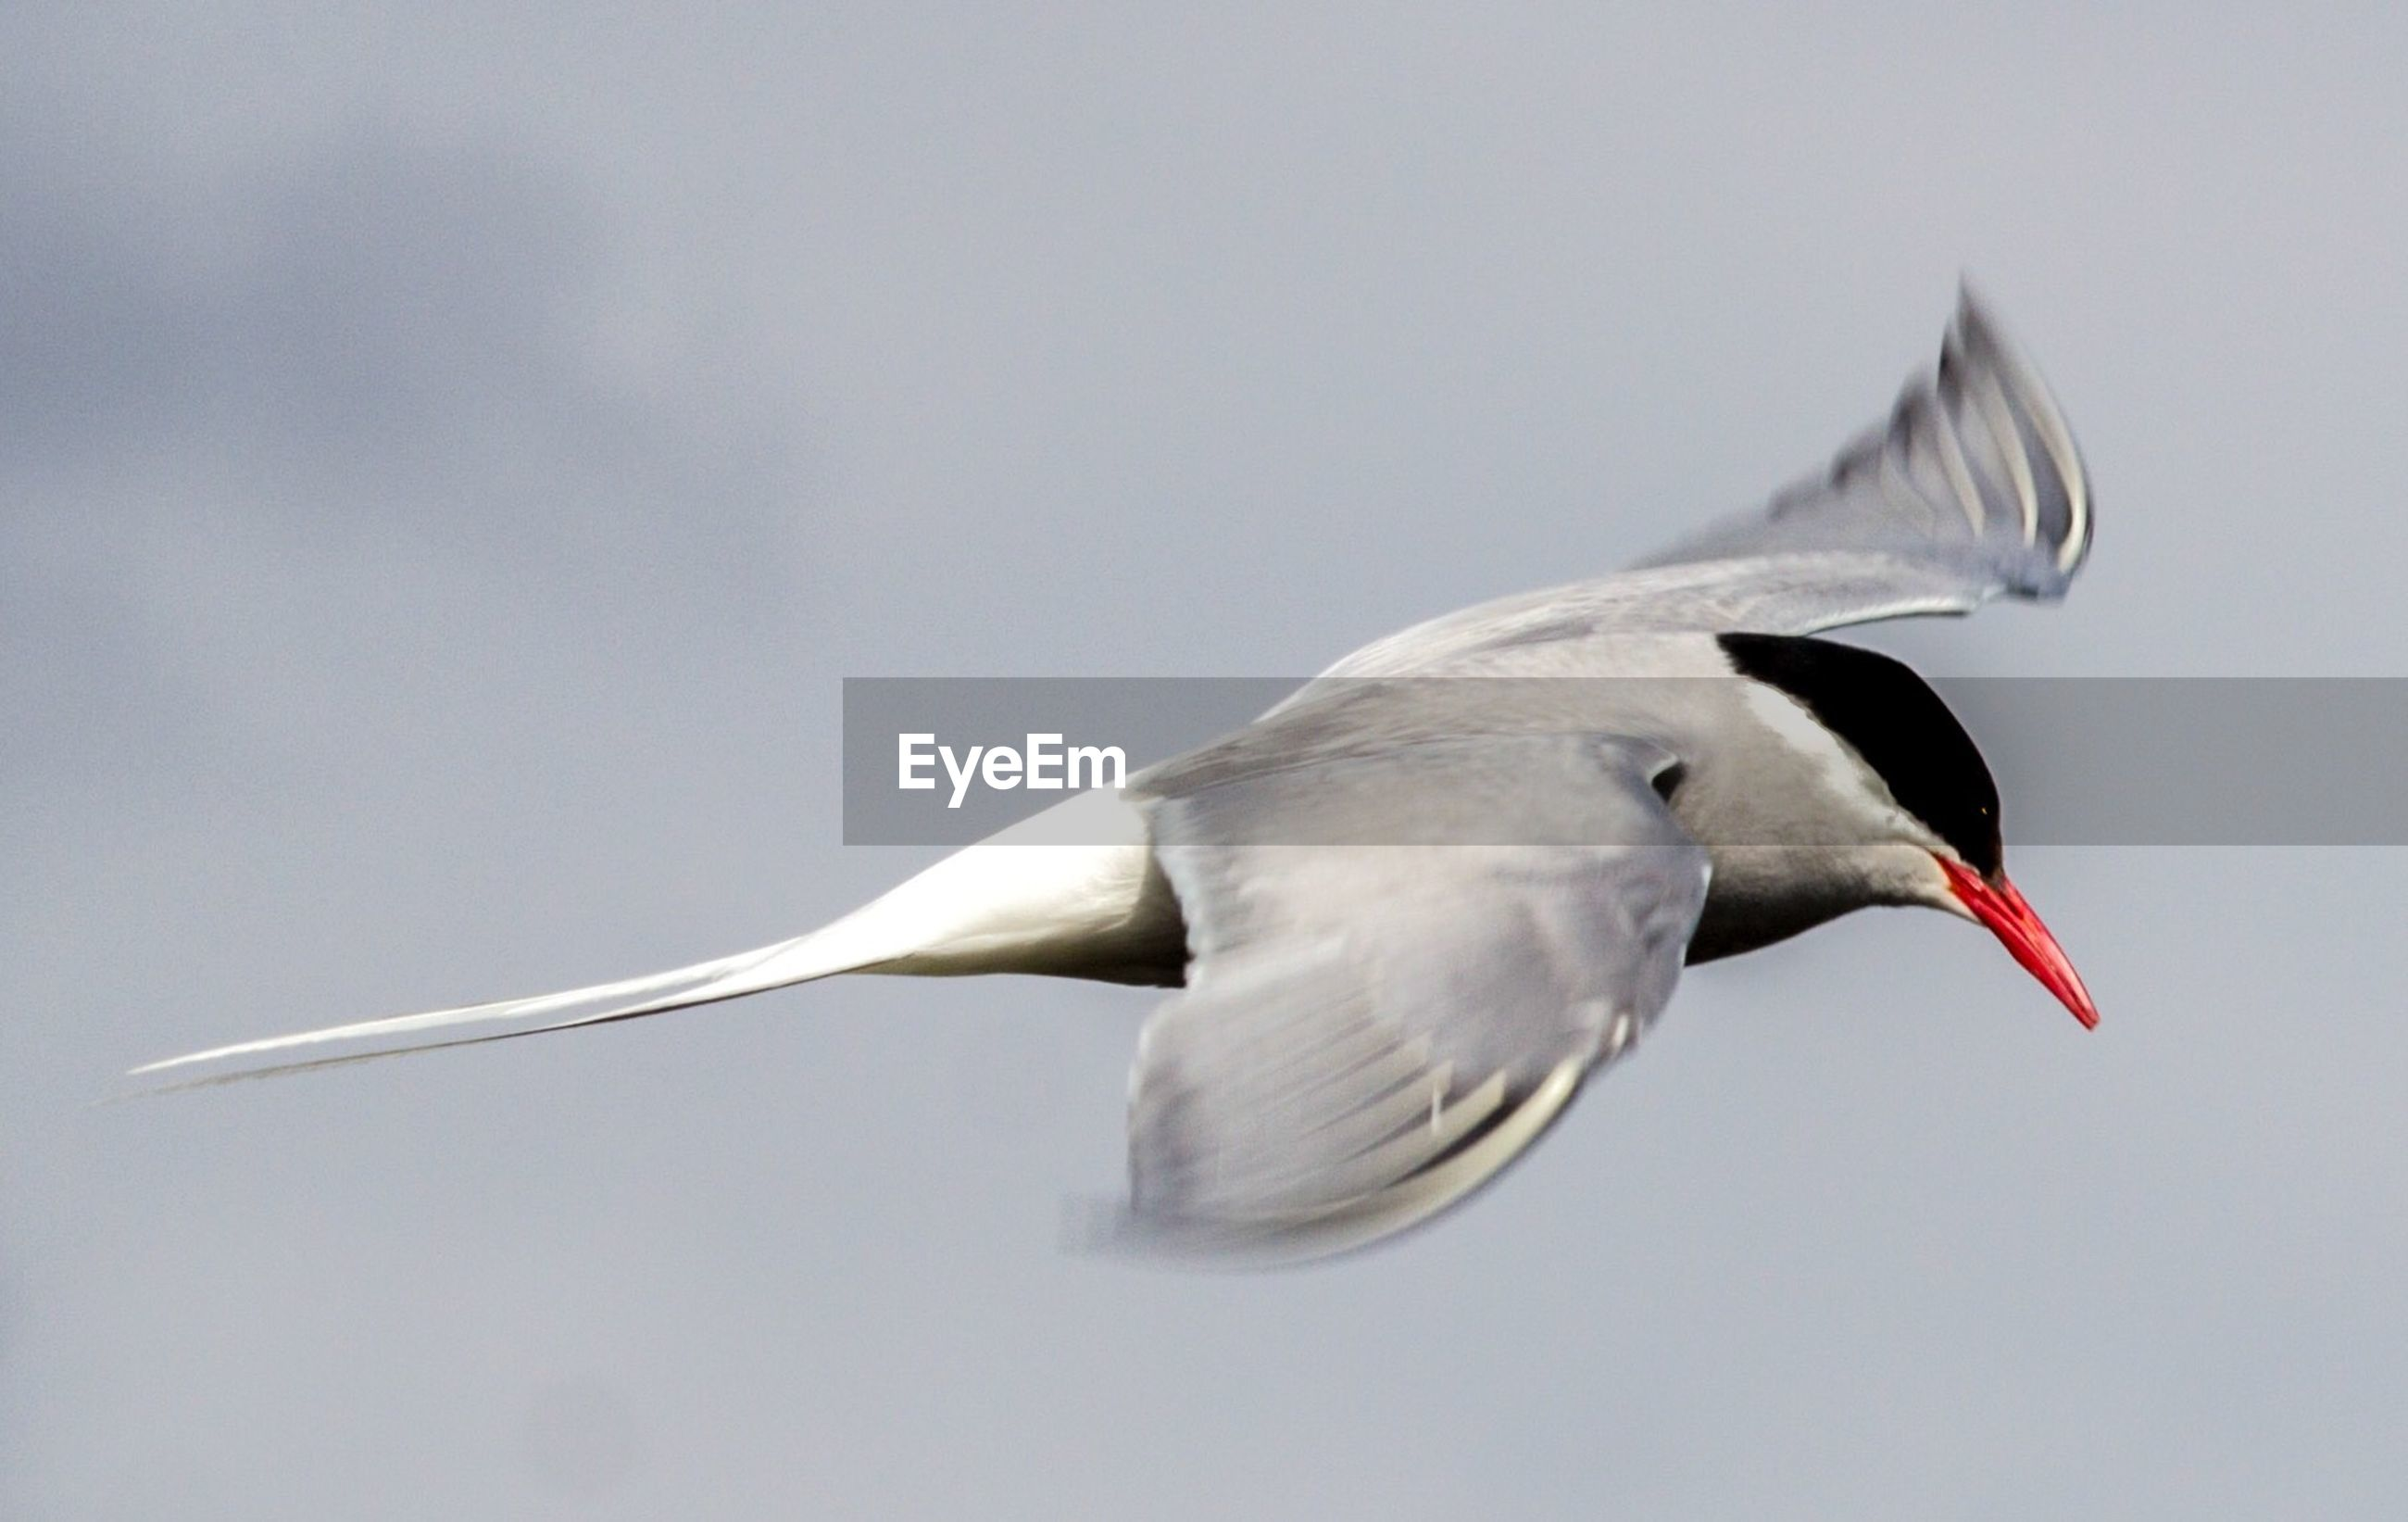 LOW ANGLE VIEW OF WHITE BIRD FLYING IN SKY